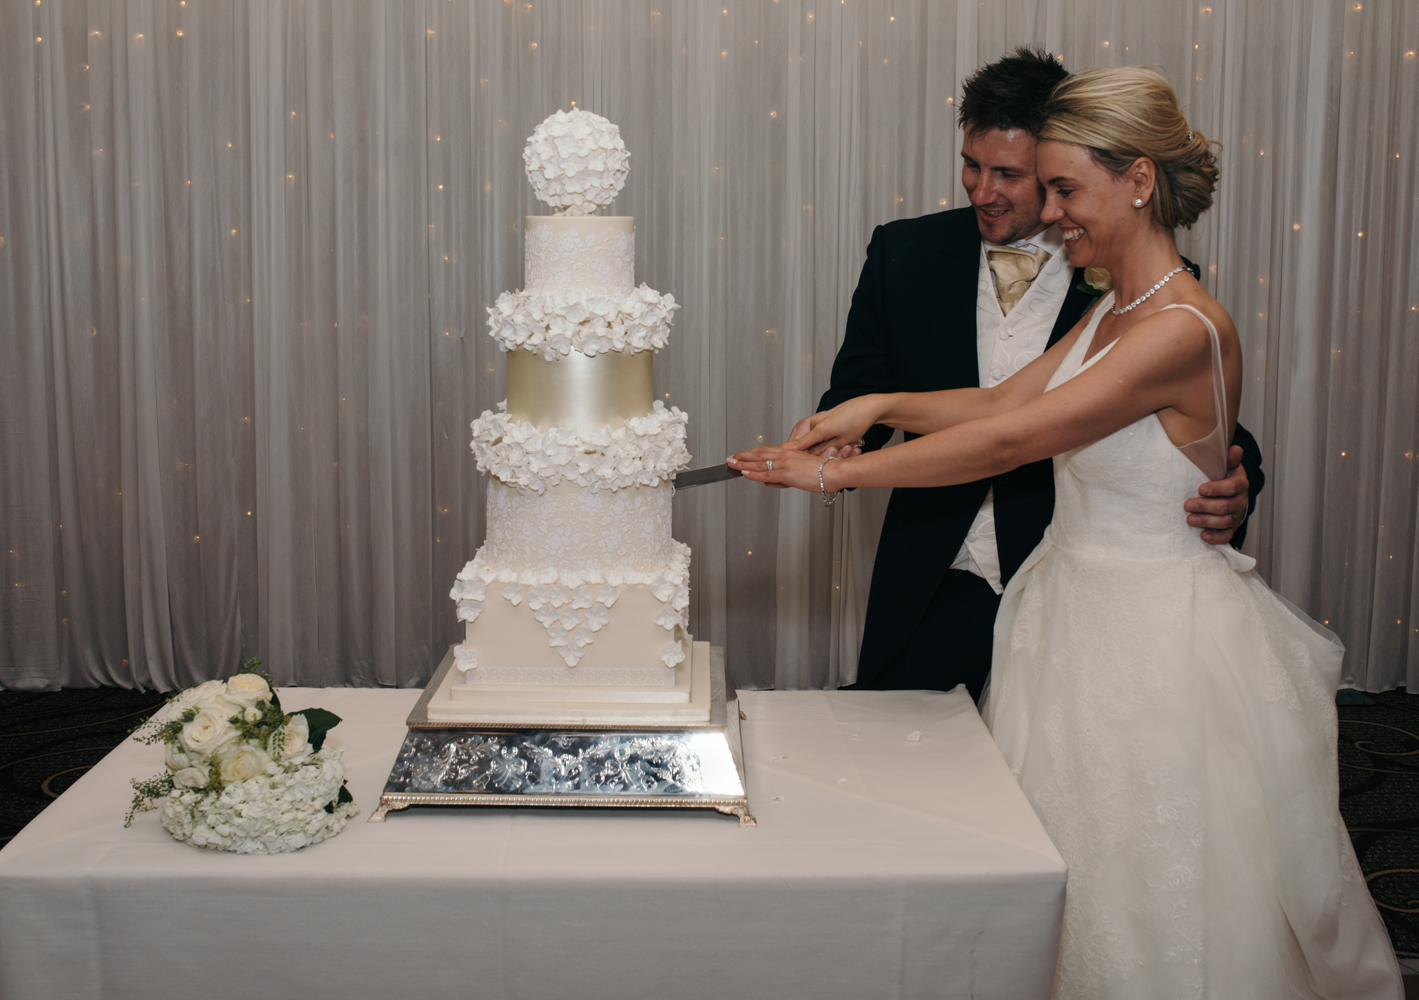 The bride and groom cutting the wedding cake